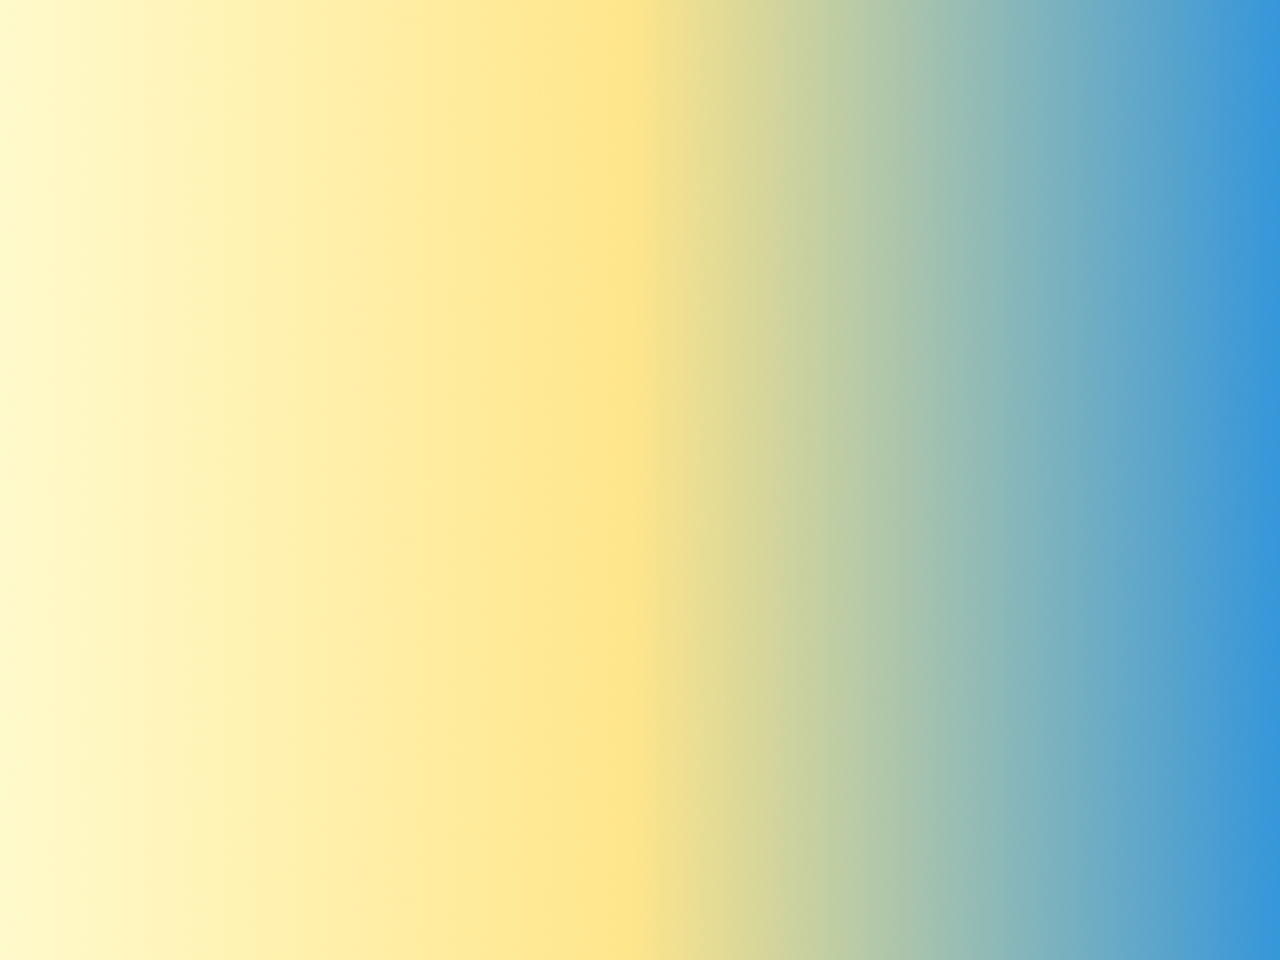 yellow to blue gradient